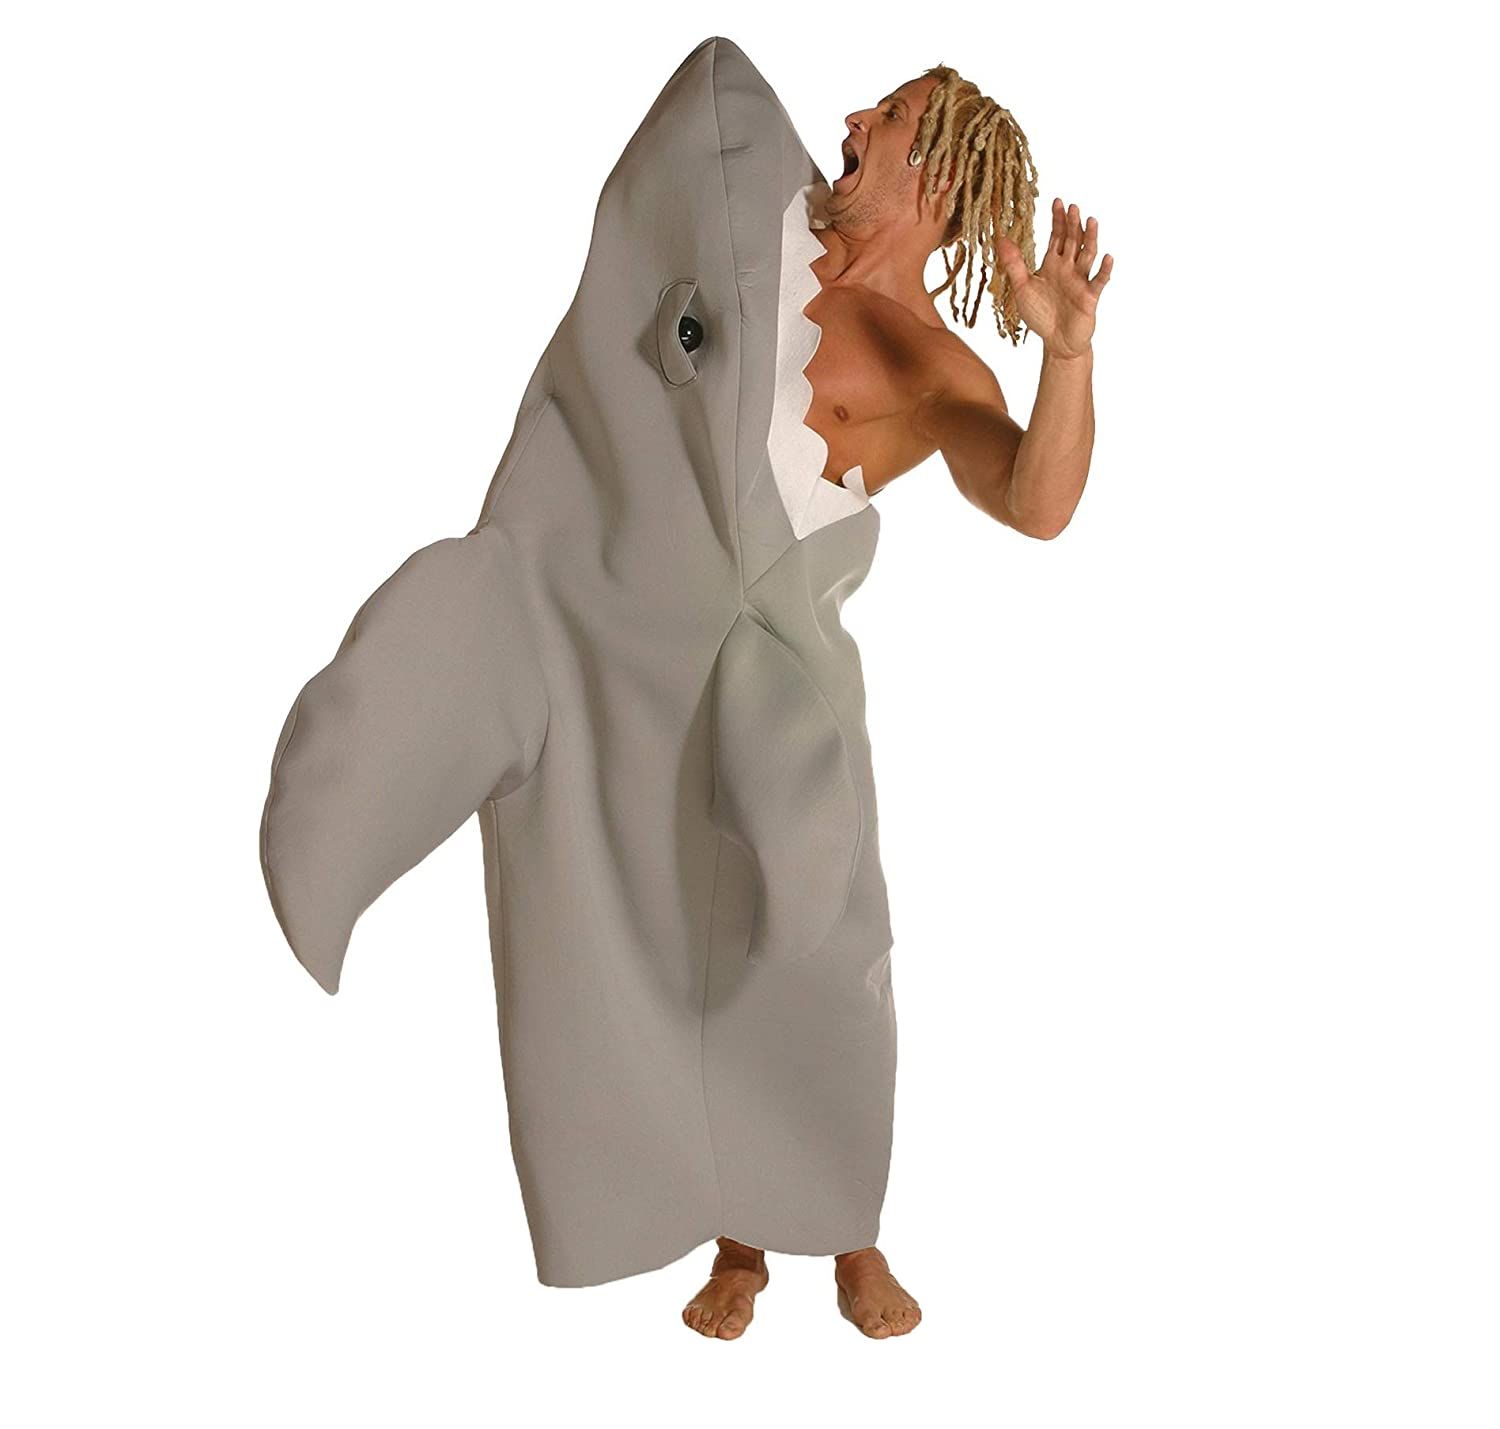 Rasta Imposta Shark Attack Costume, Gray, One Size